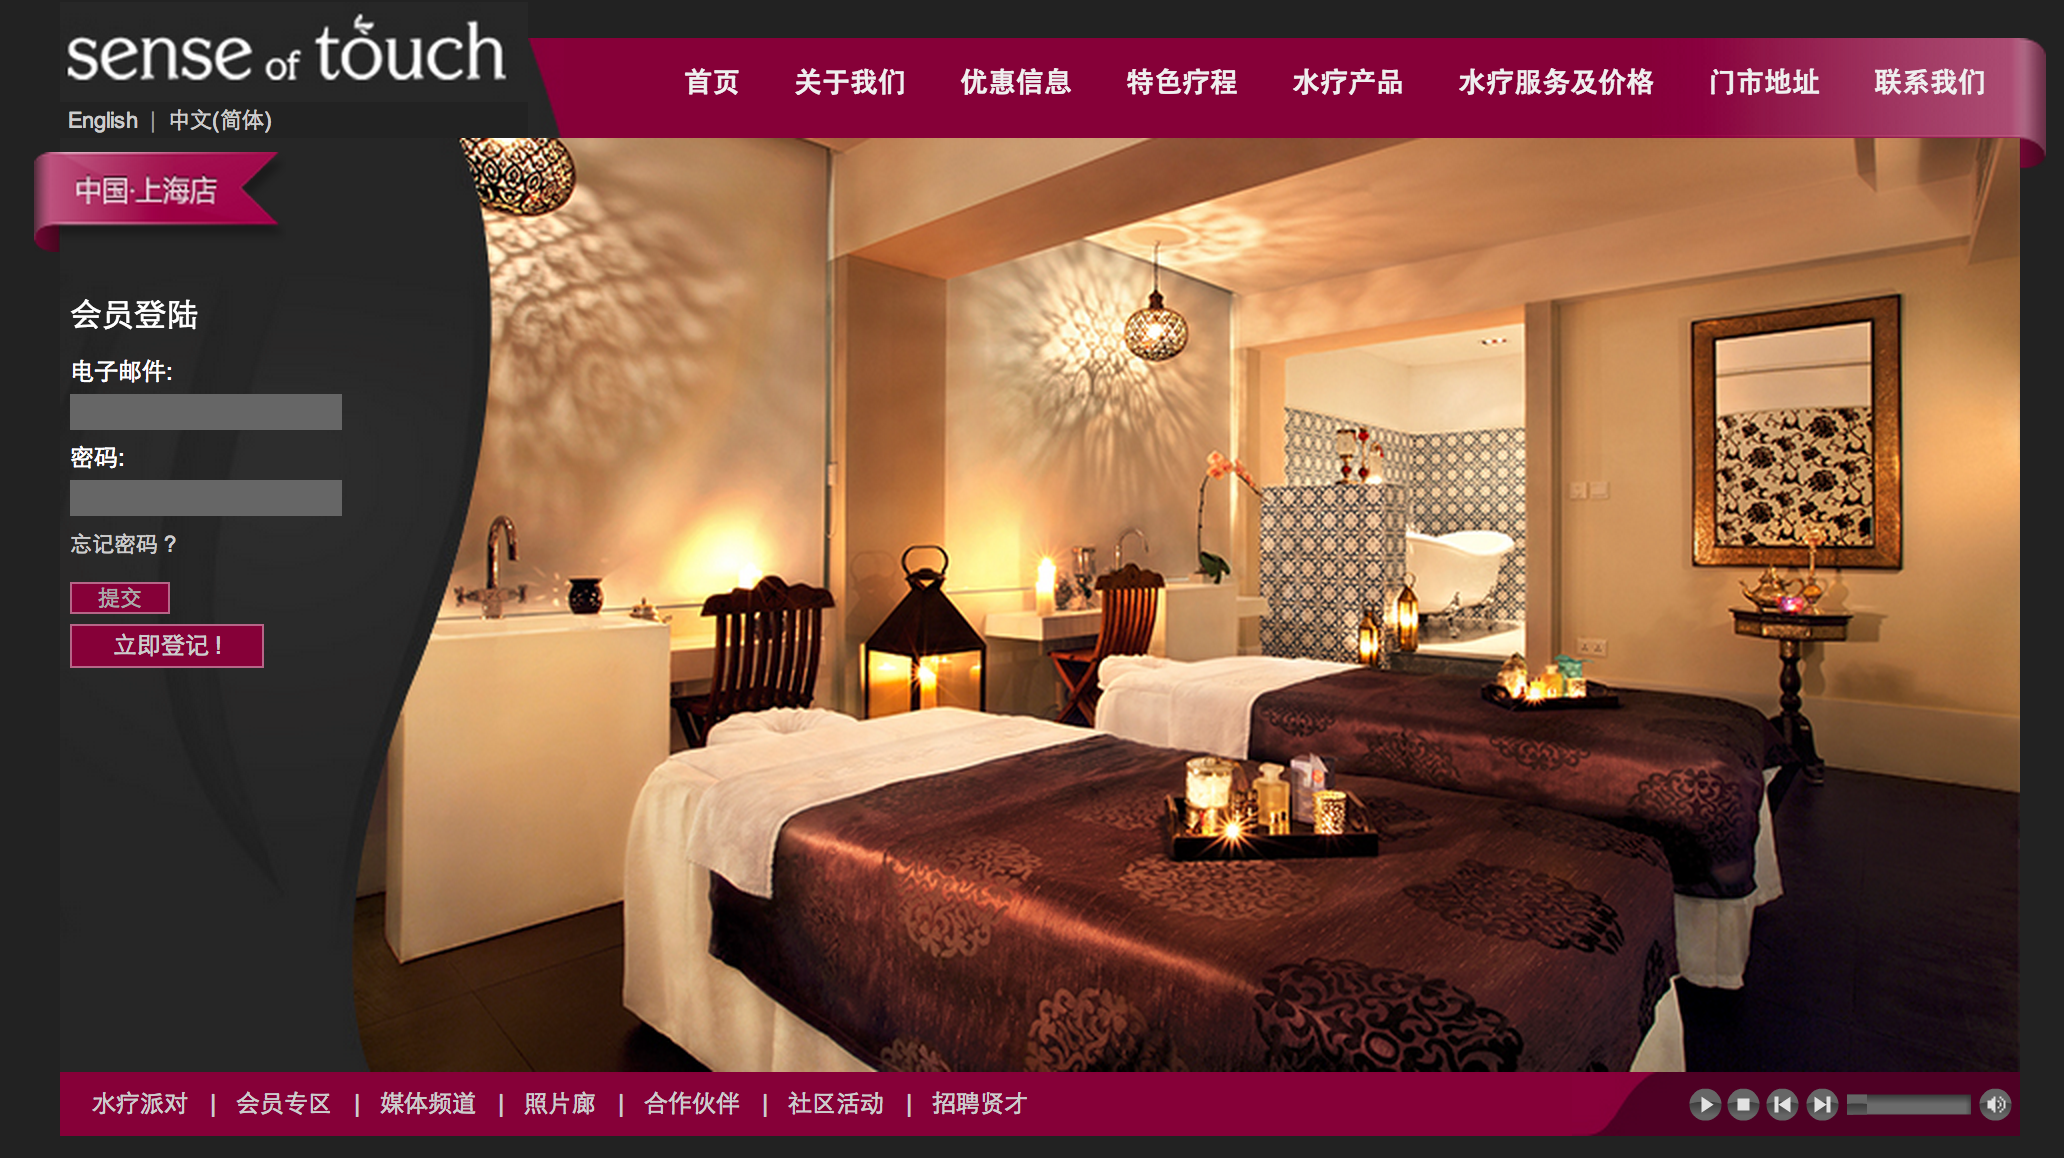 Sense of Touch Spa Room - Website